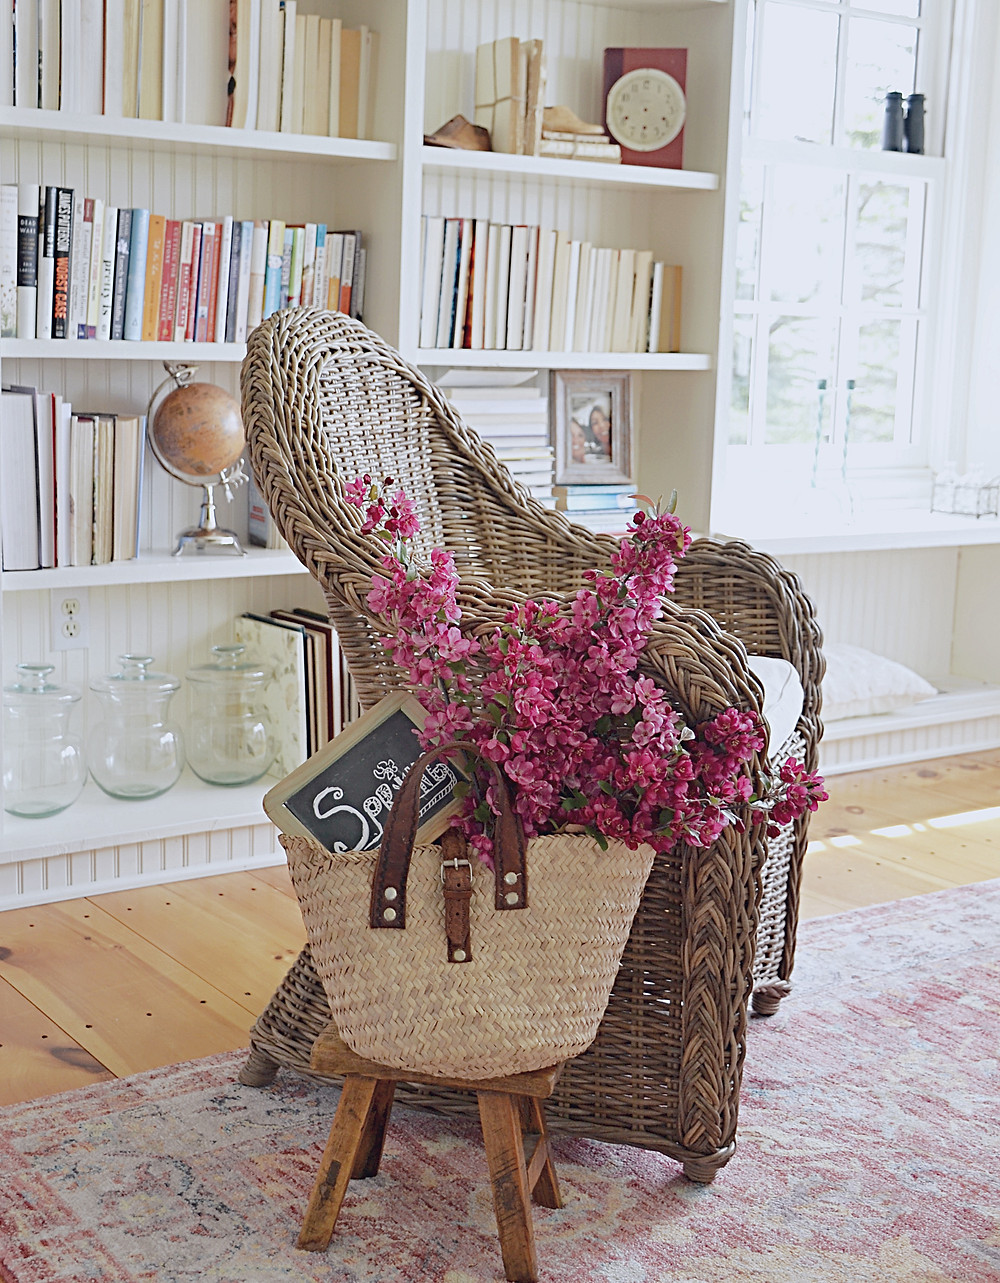 Decorated bookshelves, wicker chair flowers in a basket.